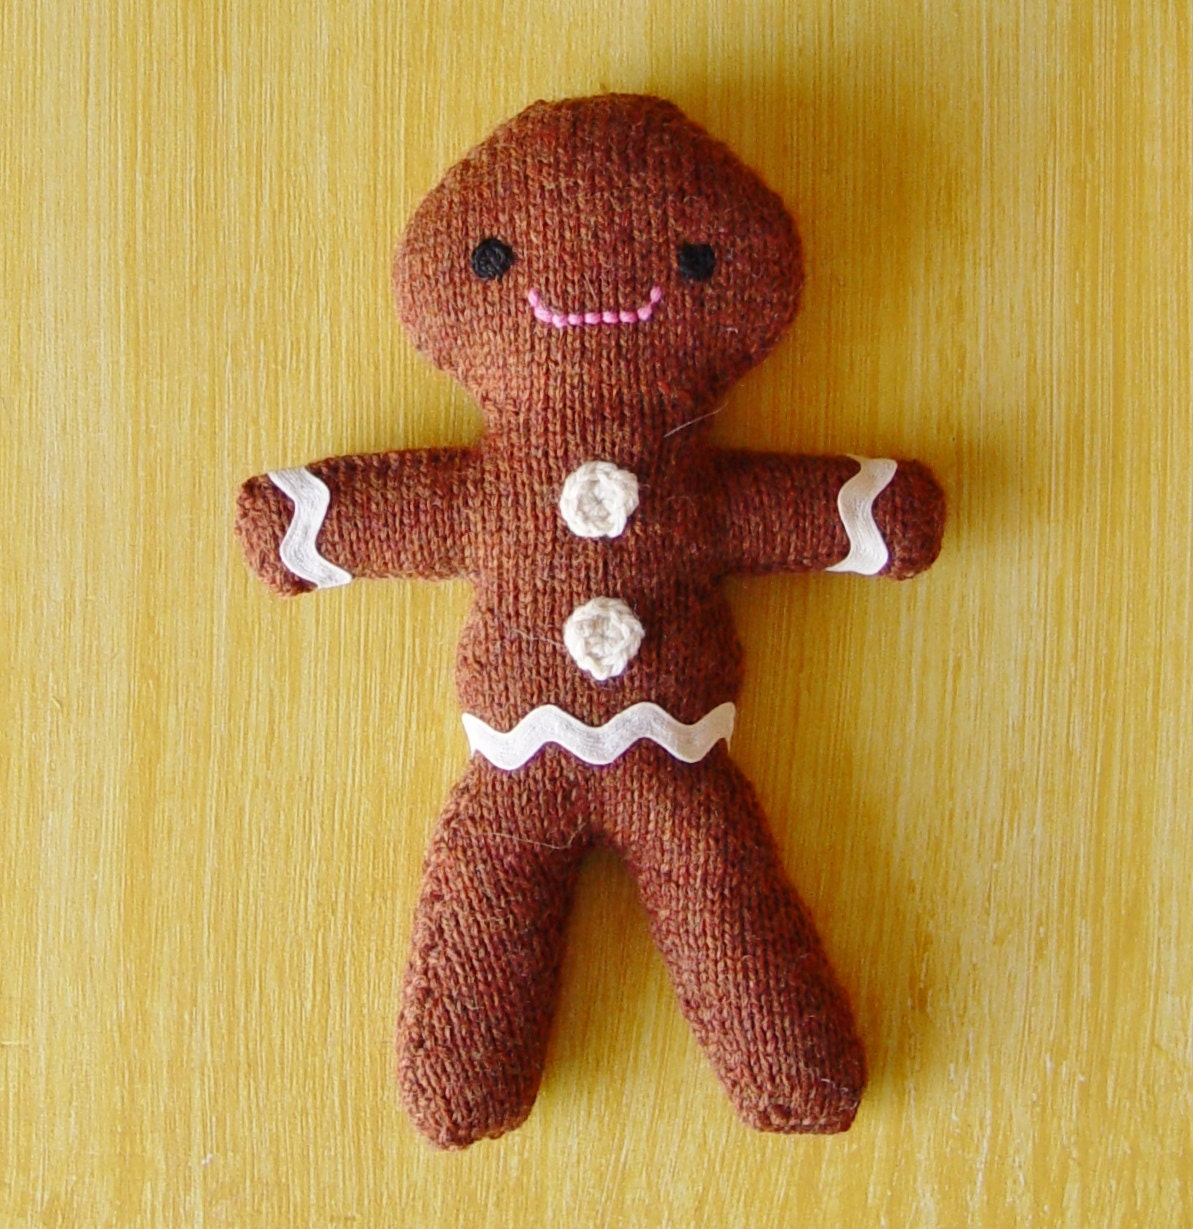 Christmas Gingerbread Man Knitting Pattern : The Gingerbread Man knitting pattern PDF by Yarnigans on Etsy